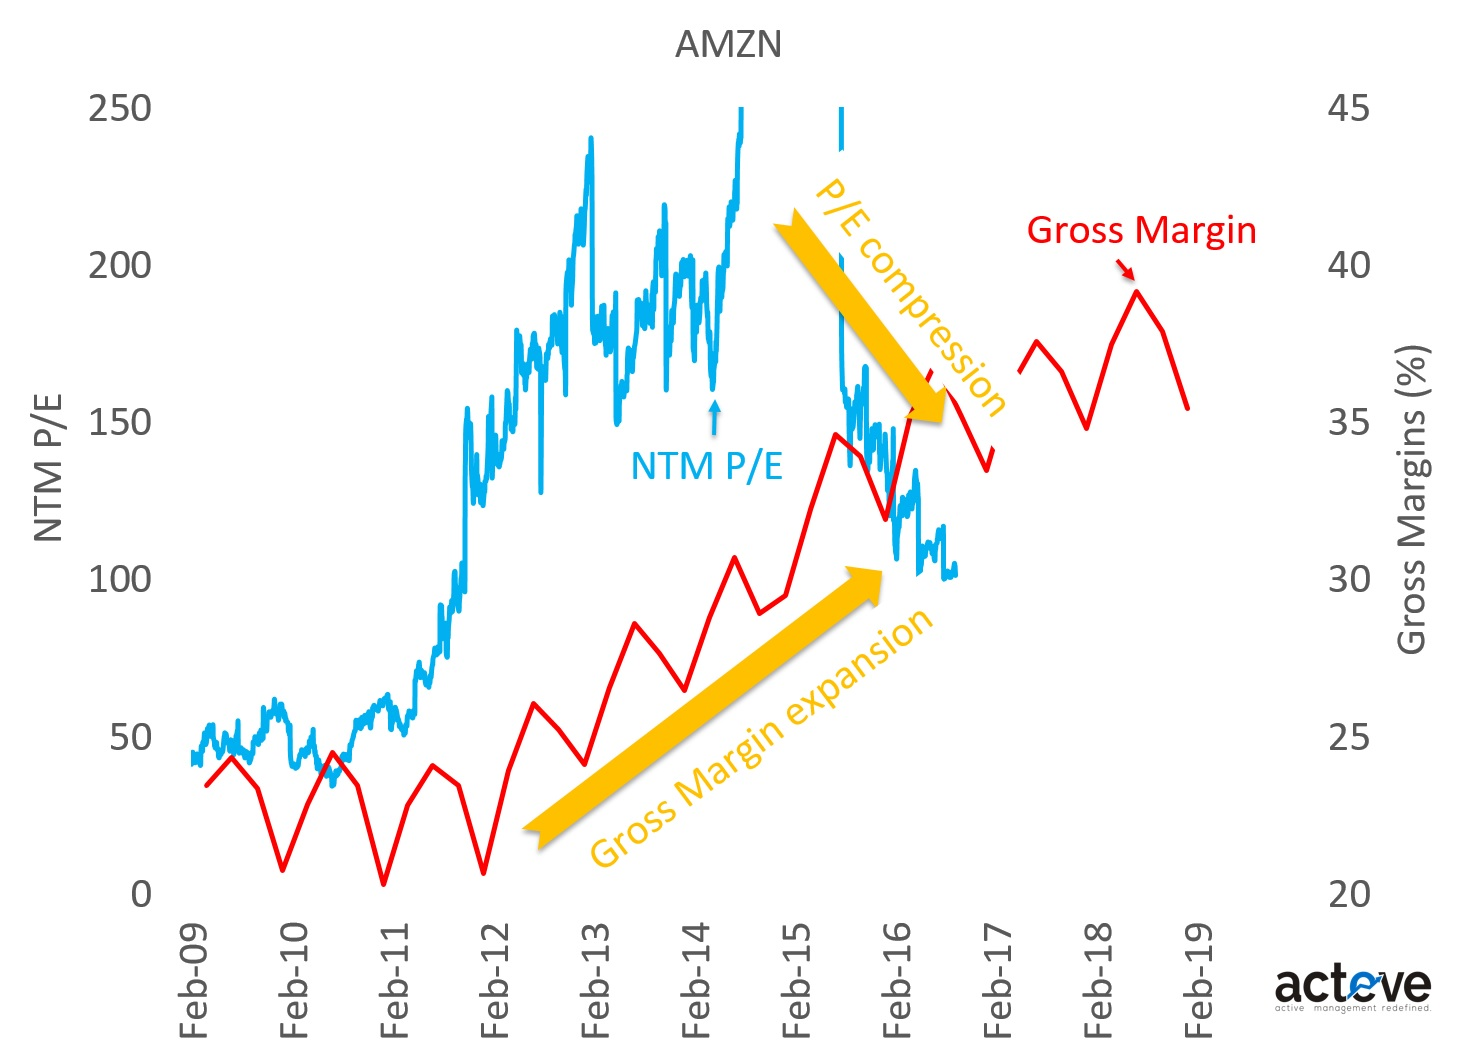 AMZN P/E vs. Gross Margin